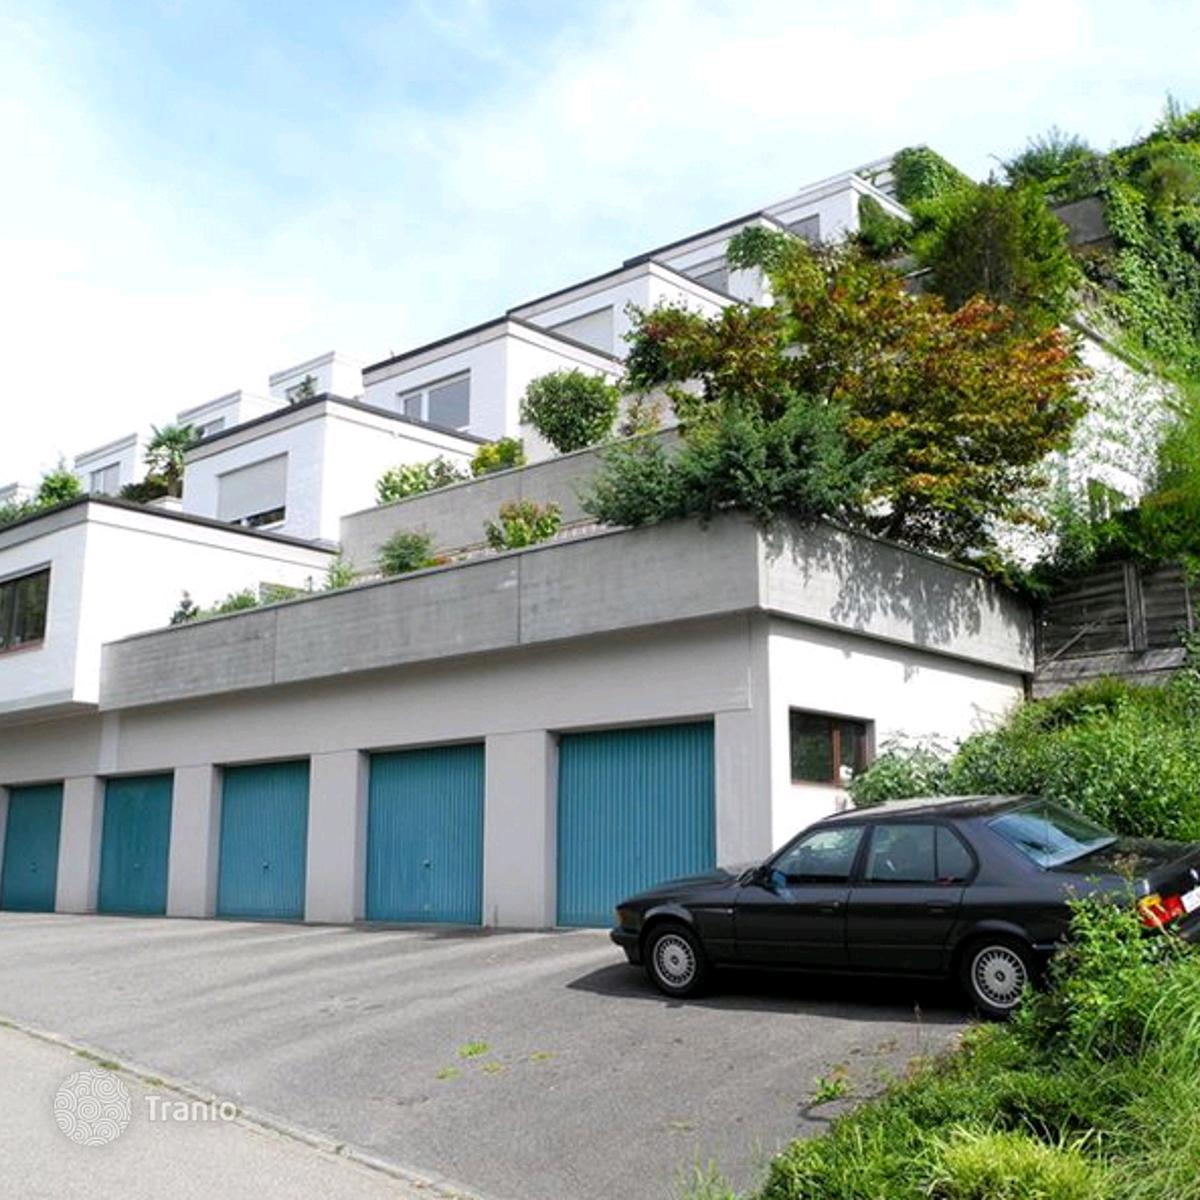 Listing 1450854 In Inzlingen Baden Wurttemberg Germany Townhome Overseas Property On Tranio